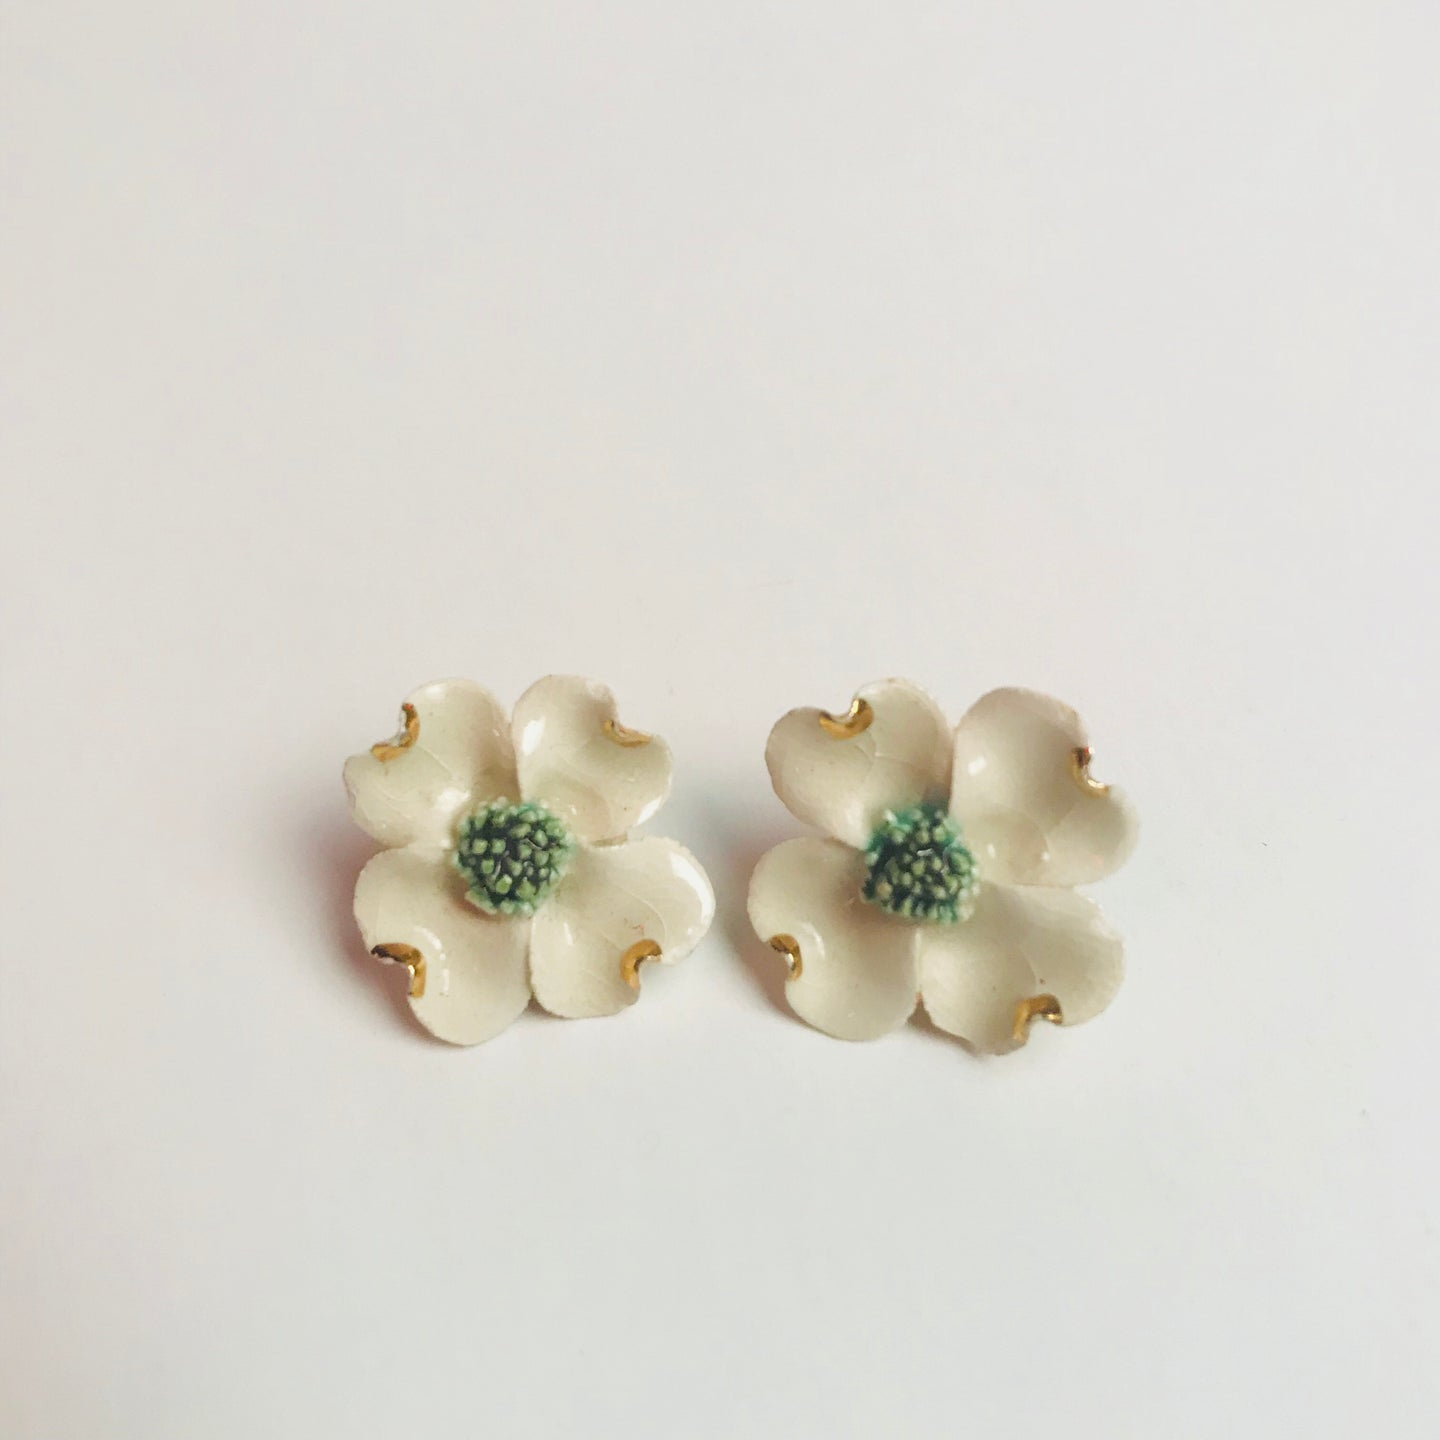 Ceramic flower earrings